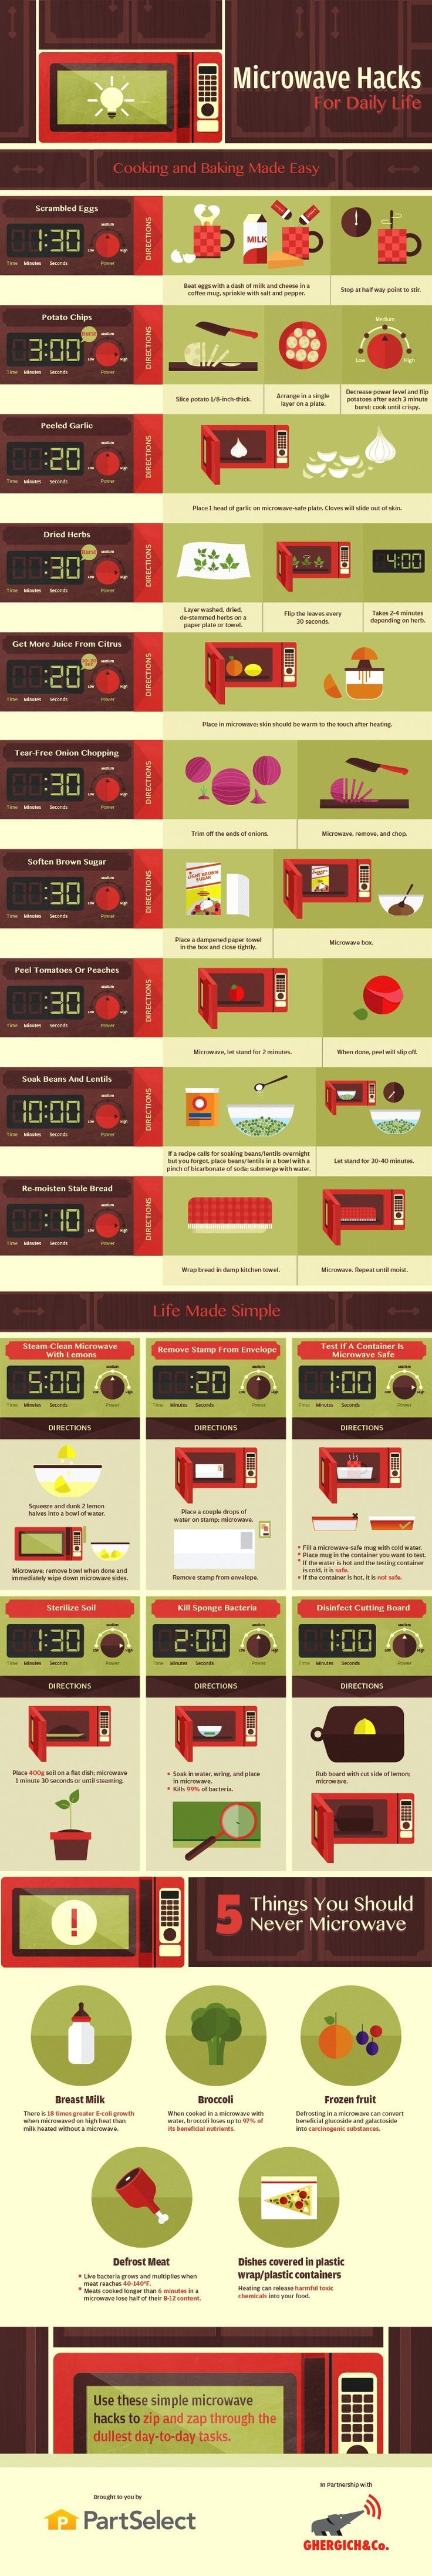 21 Microwave Oven Hacks You Should Be Using Microwave